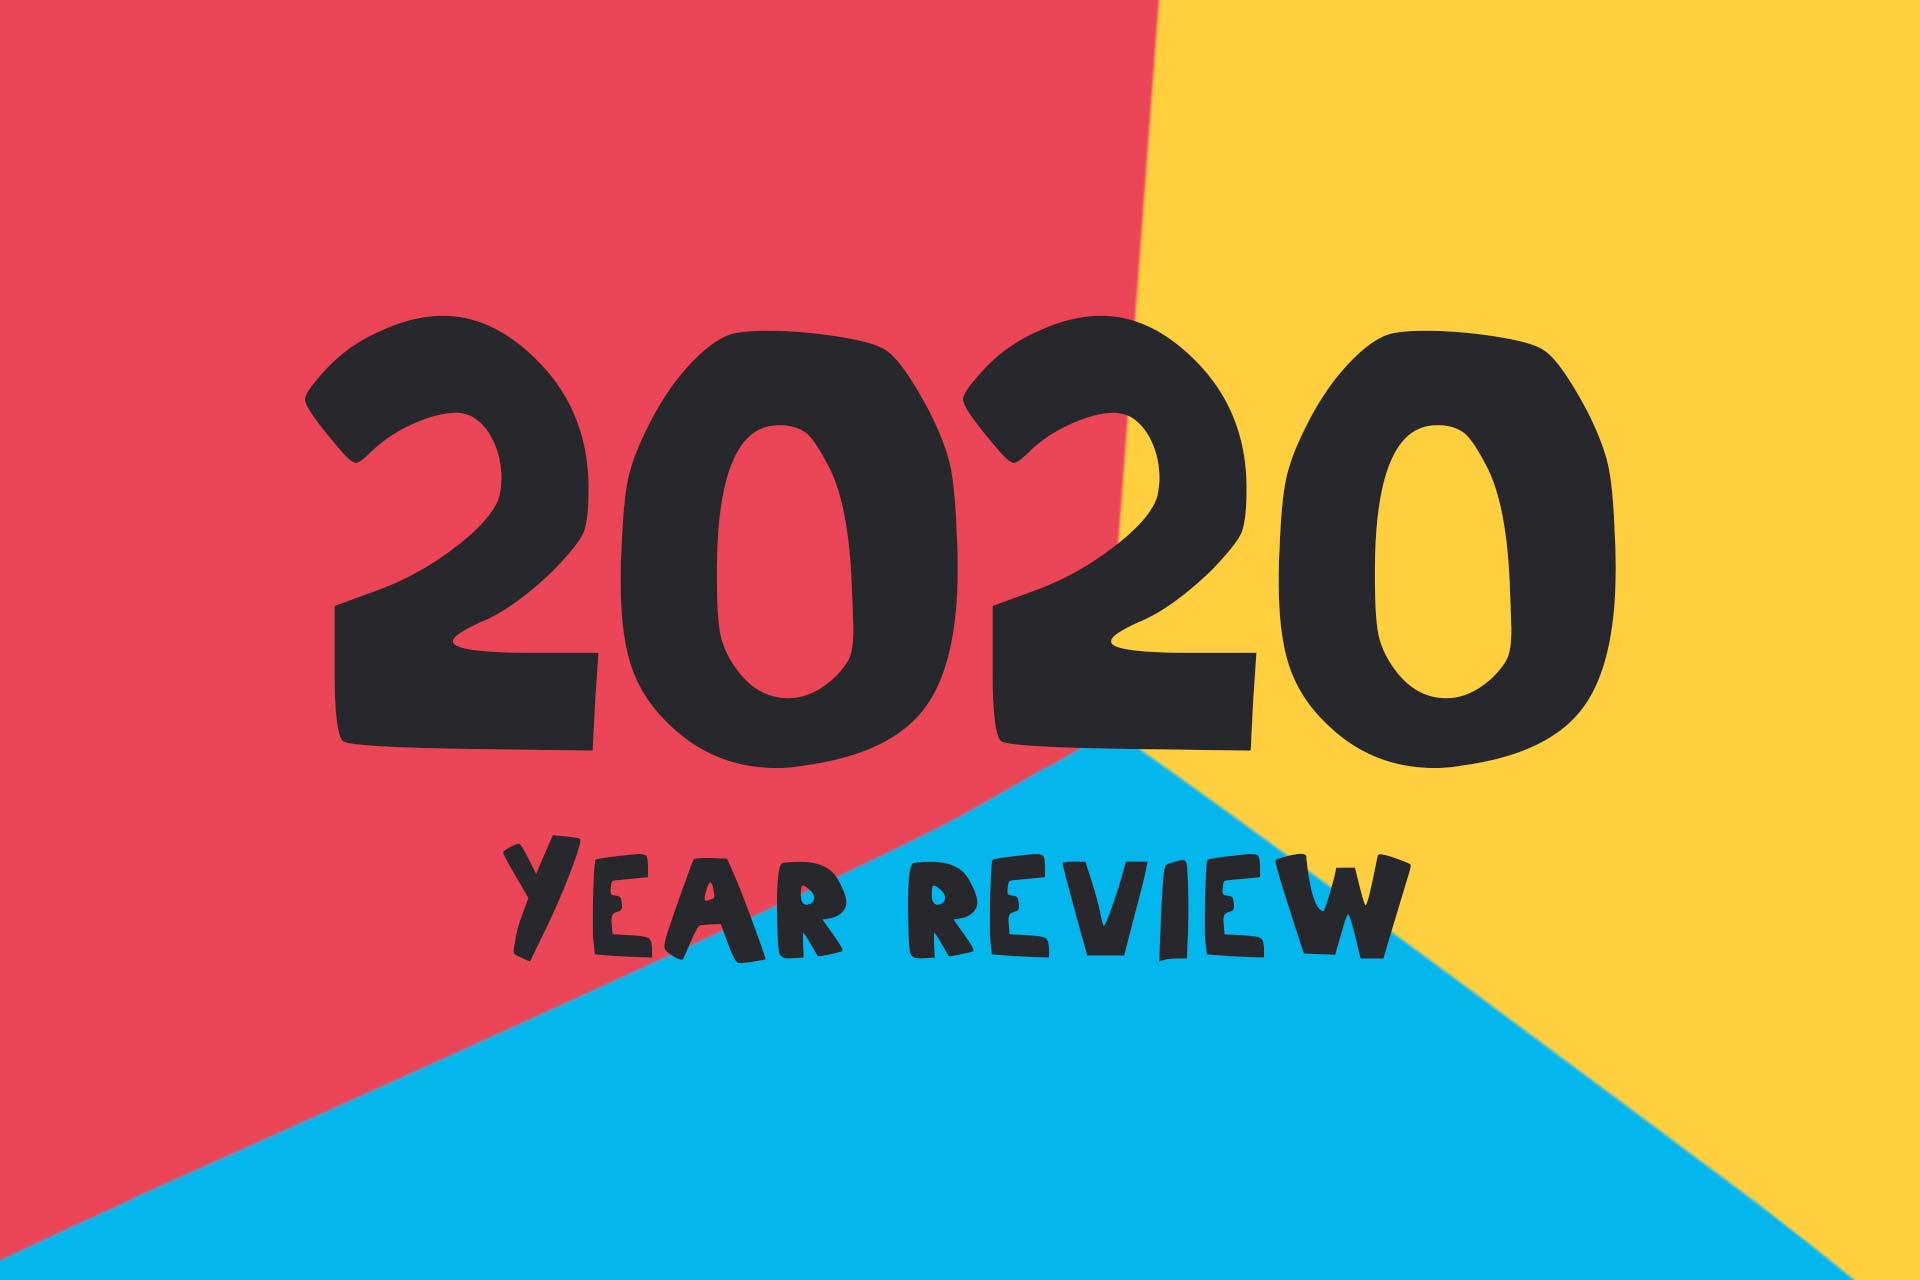 Illustration saying 2020 year review